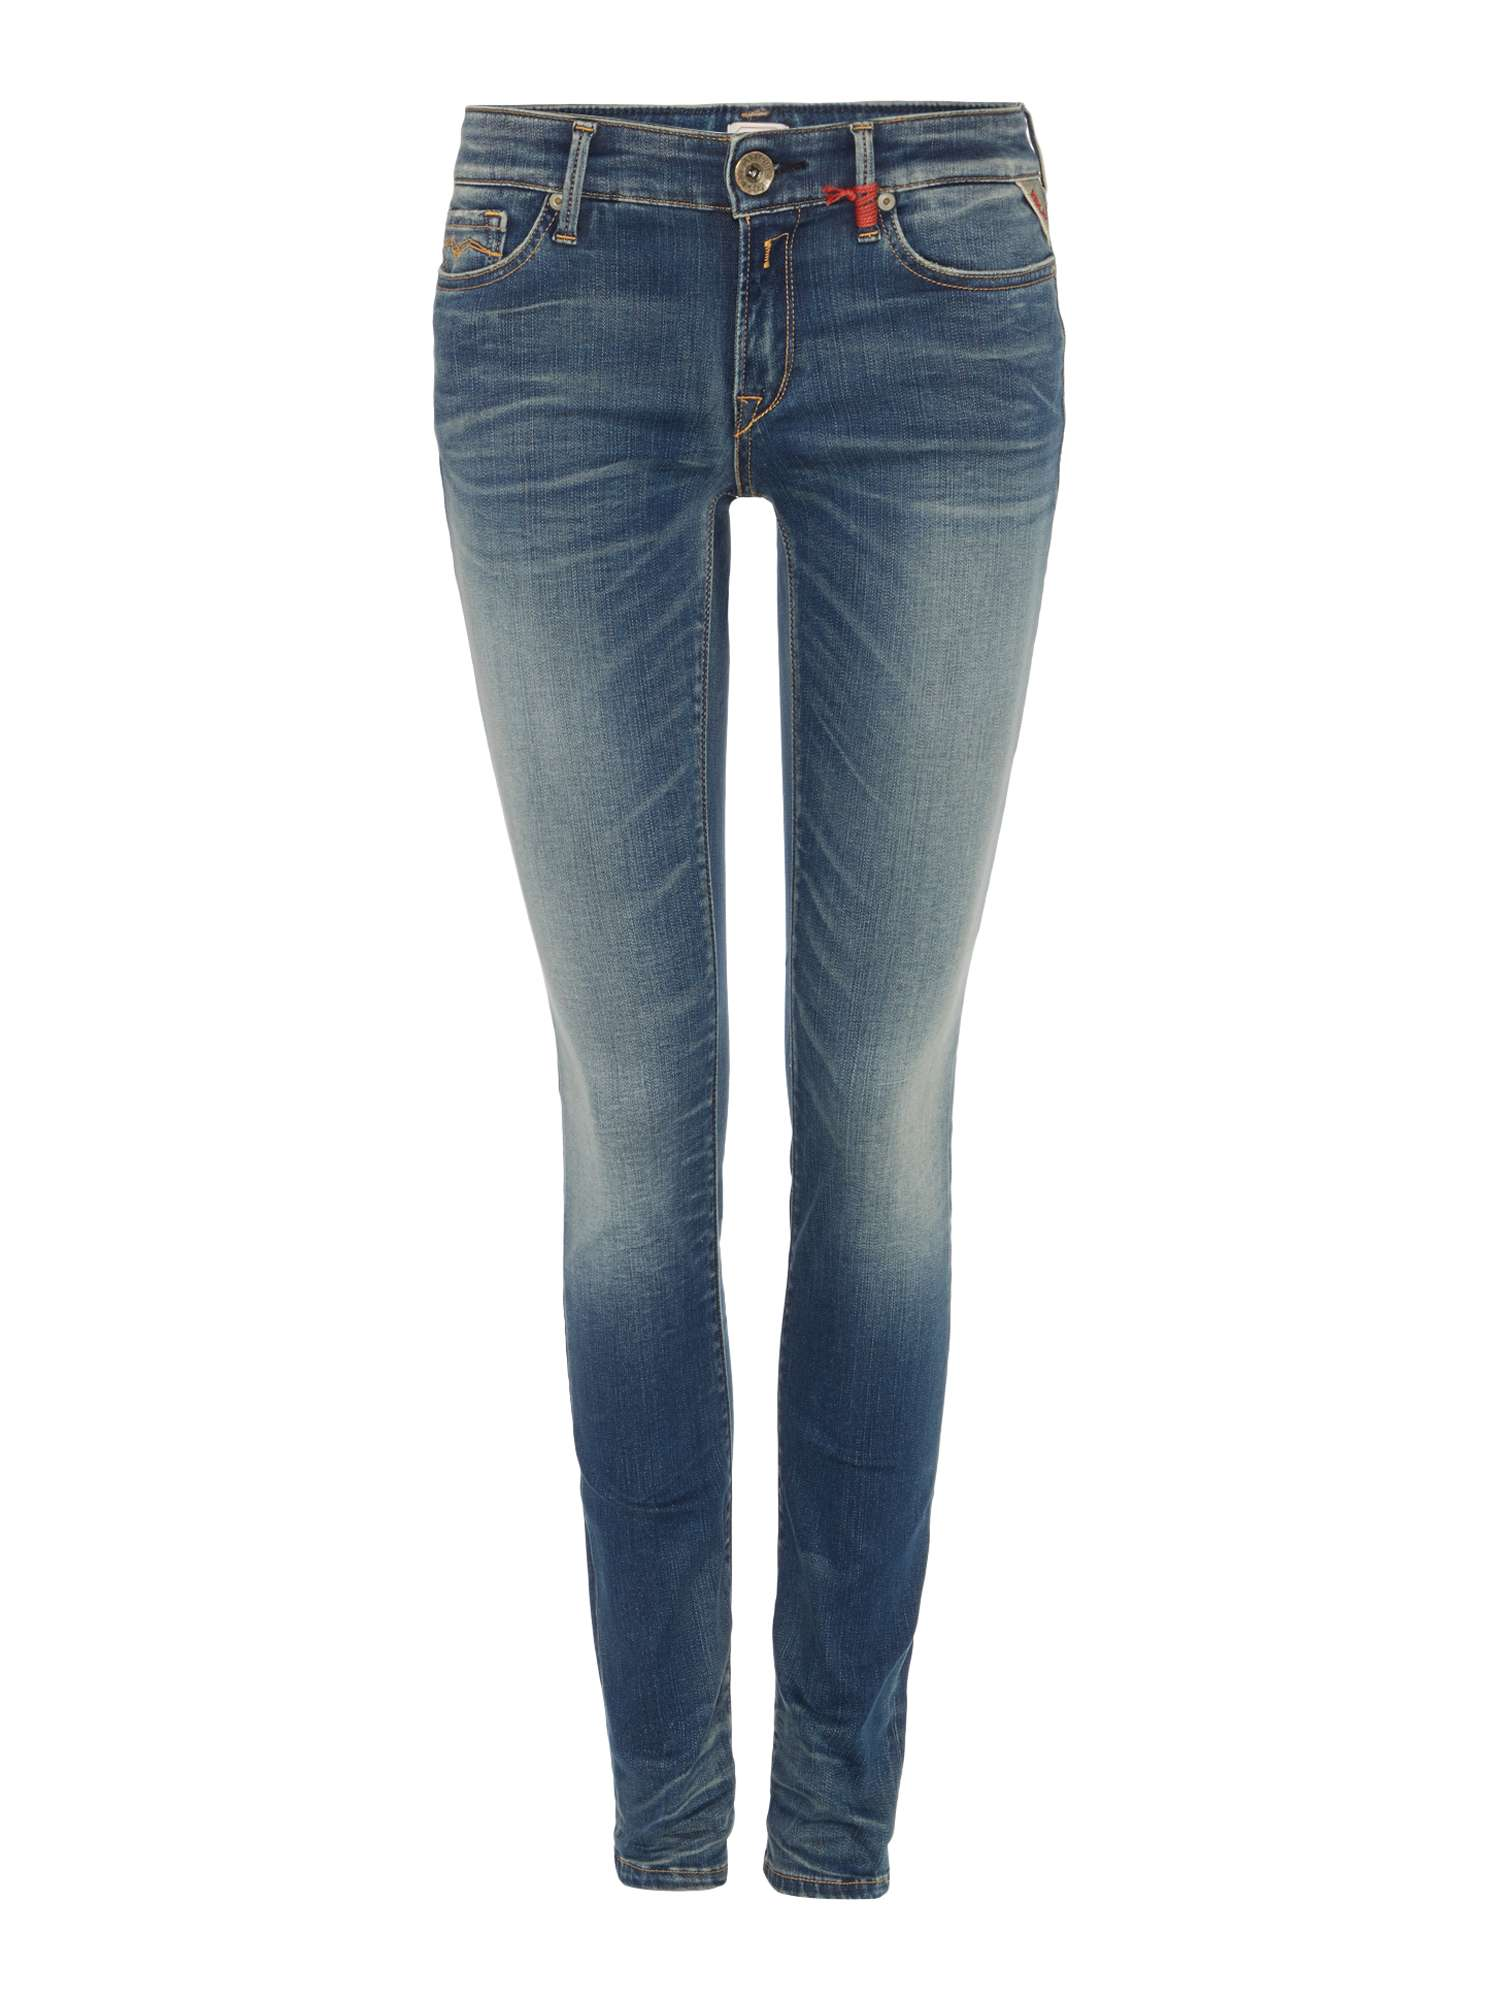 Replay Luz Luz Hyperflex Jeans Skinny Replay UrUqx4f